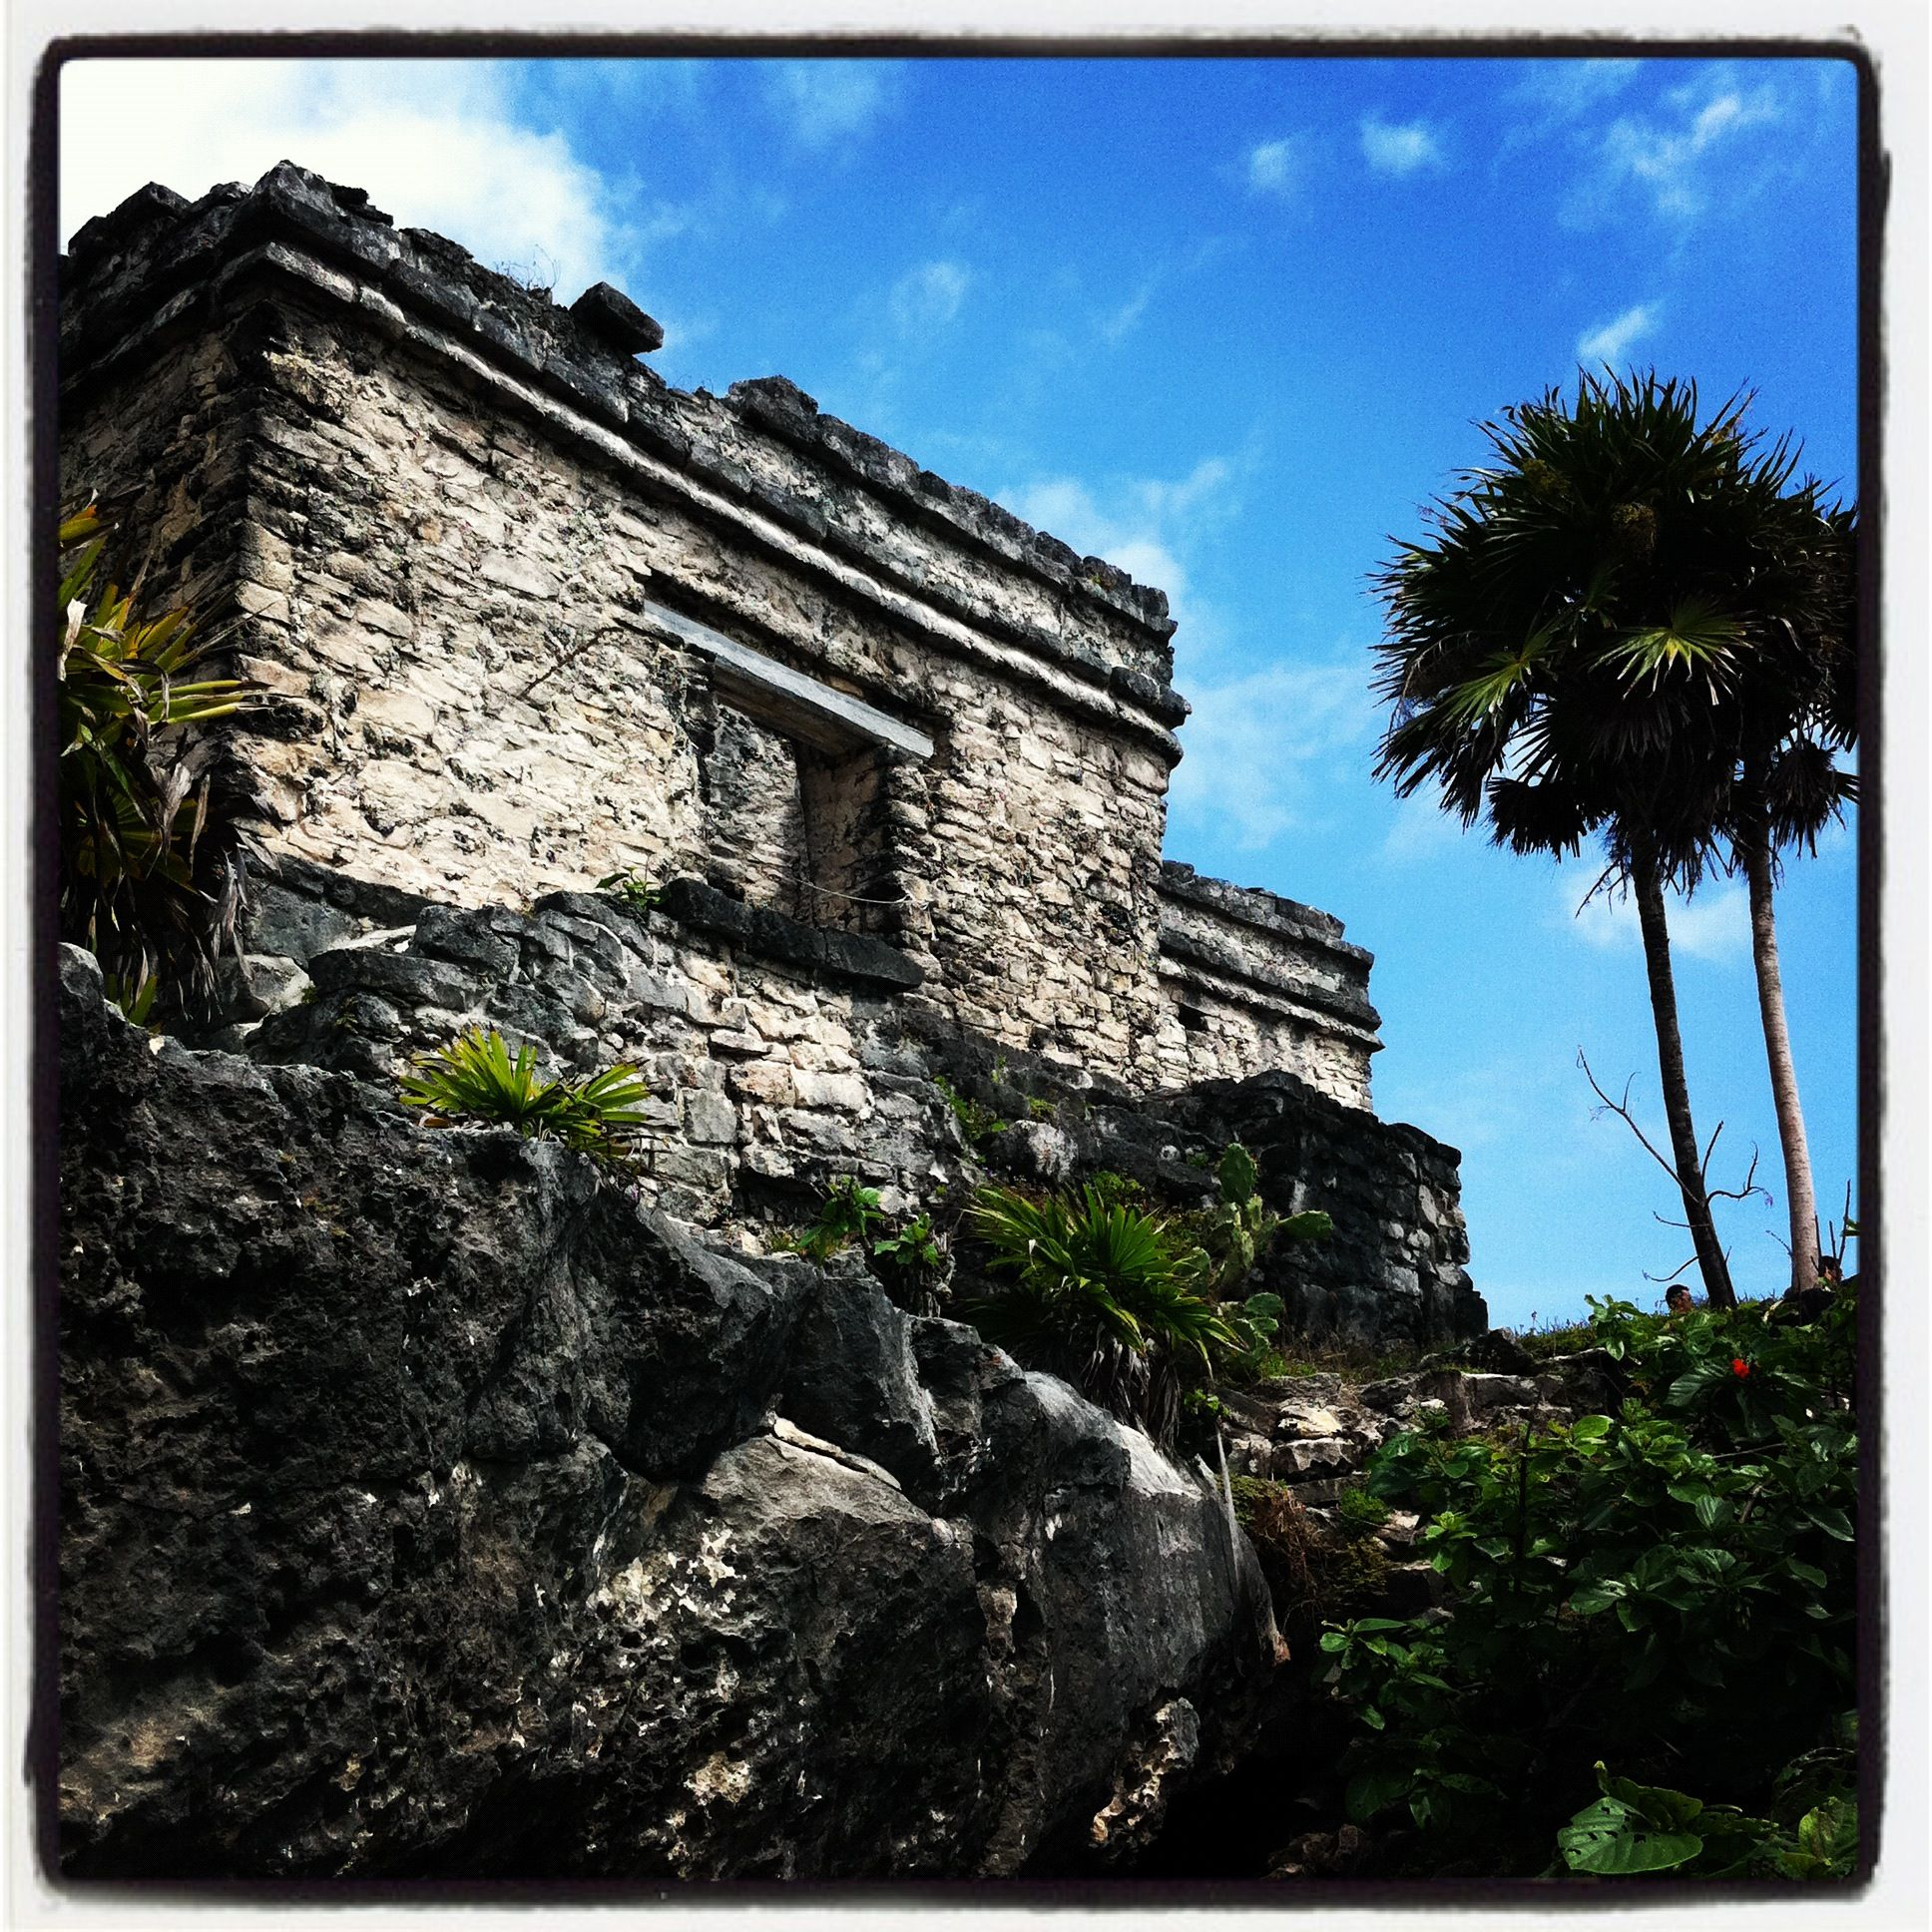 Best Places In Mexico To See Ruins: Tulum Mayan Ruins On Isla Mujeres On The Yucatan Peninsula